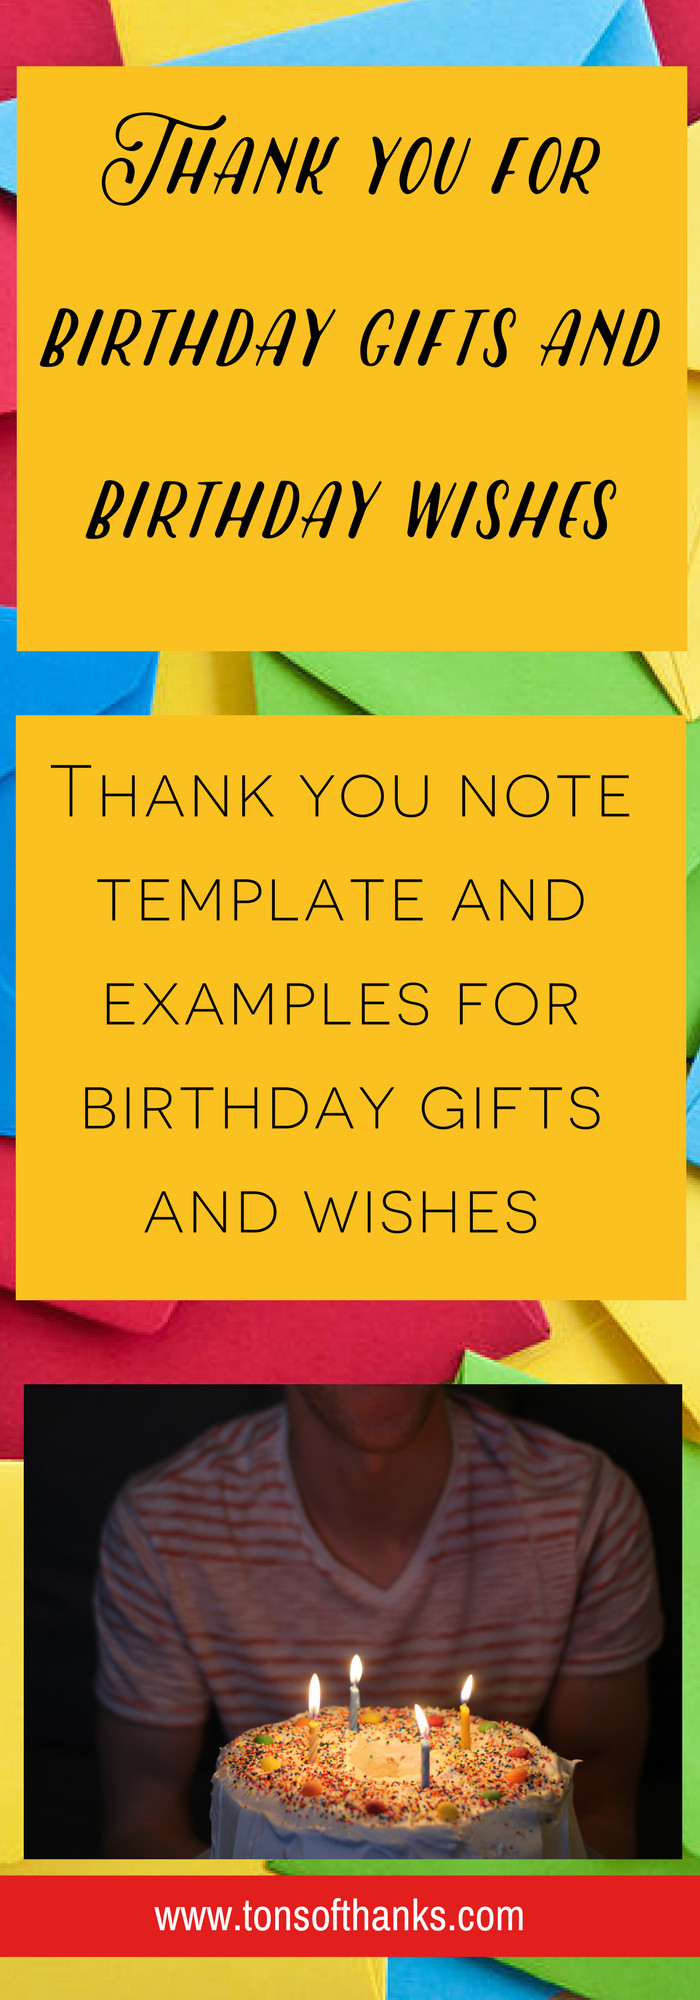 Best ideas about Examples Of Birthday Wishes . Save or Pin Thank you for the birthday wishes Thank you note examples Now.